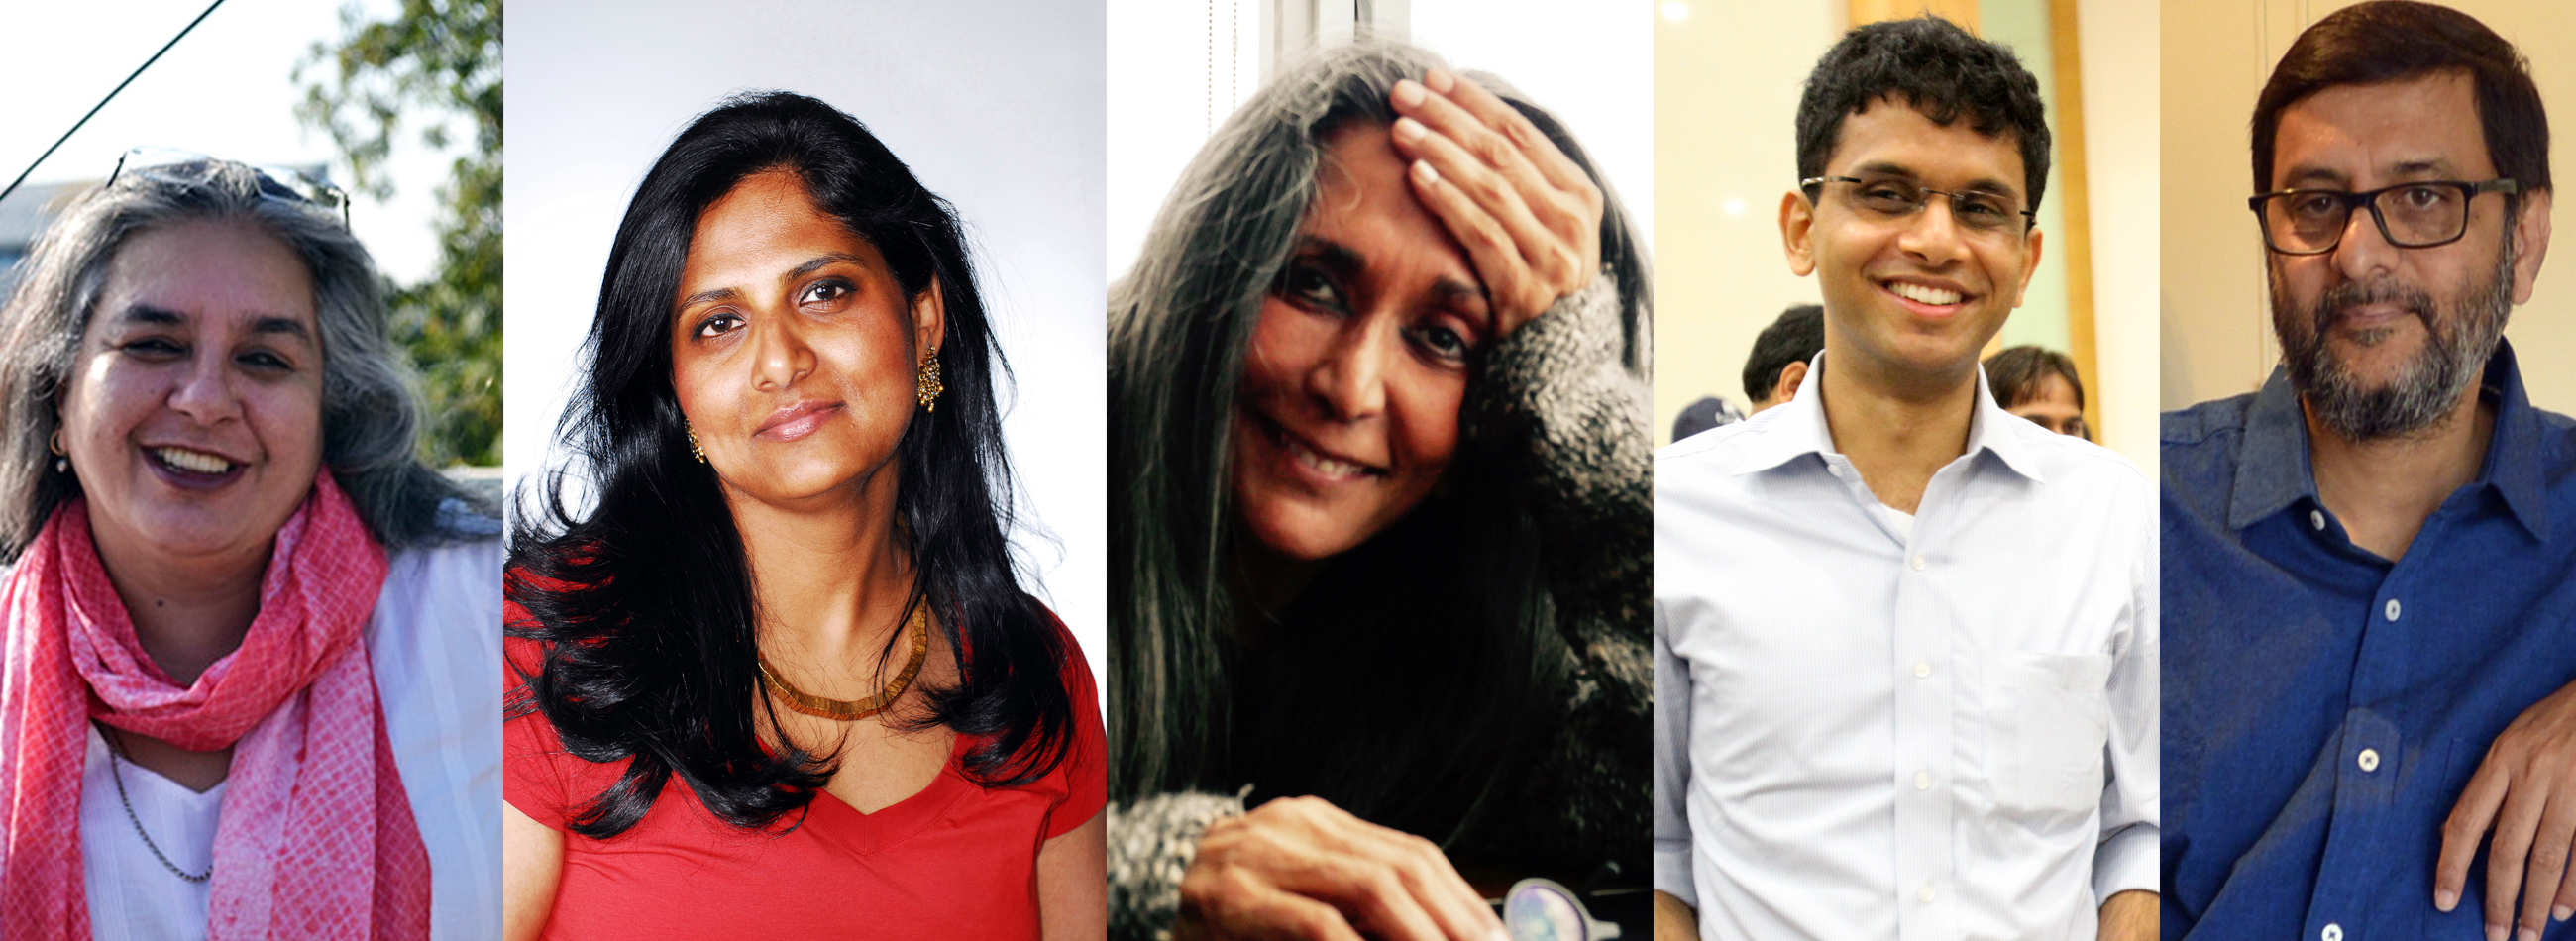 The Jury for the 2018 JCB Prize for Literature (From left to right): Arshia Sattar, Priyamvada Natarajan, Deepa Mehta, Rohan Murty and Vivek Shanbhag